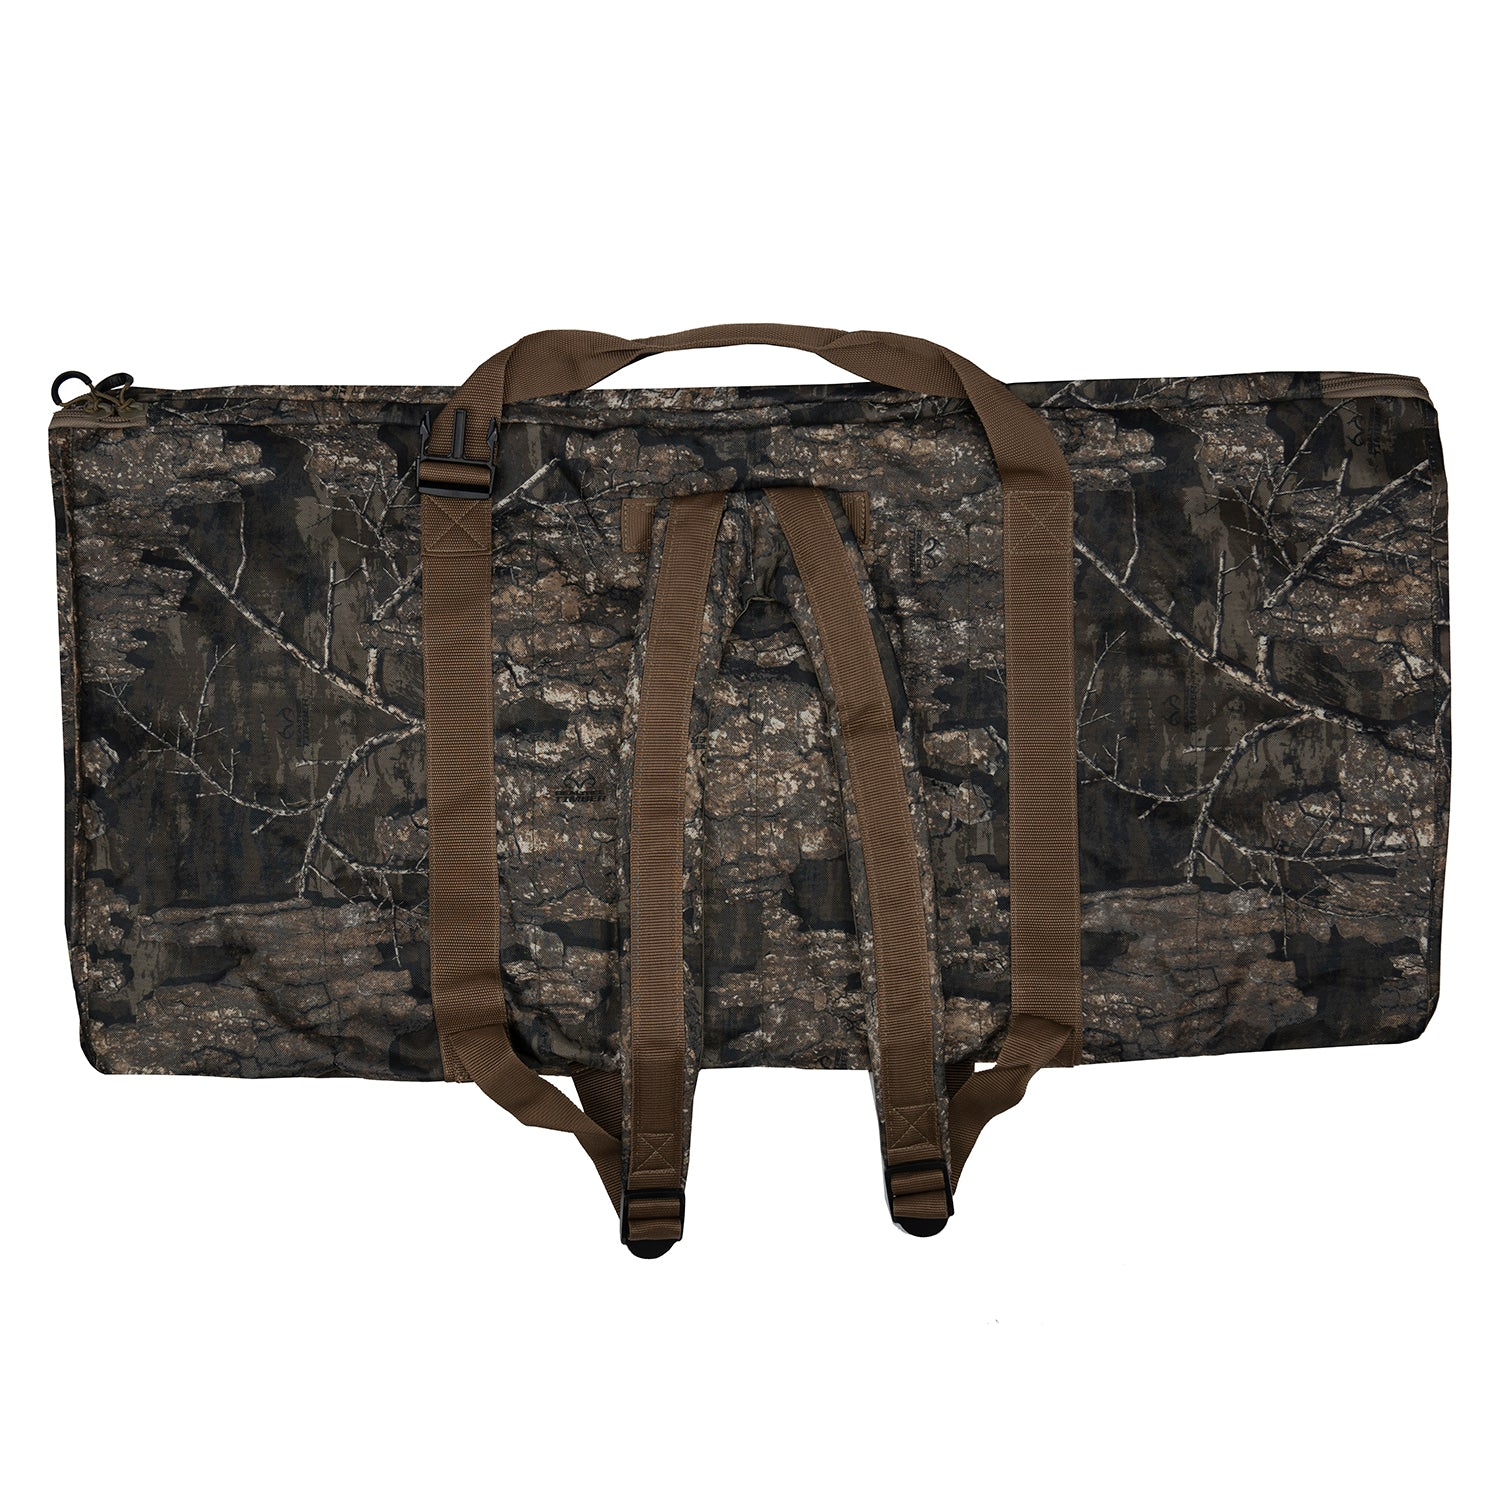 Deluxe 12 Slot Duck Decoy Bag – Realtree Timber